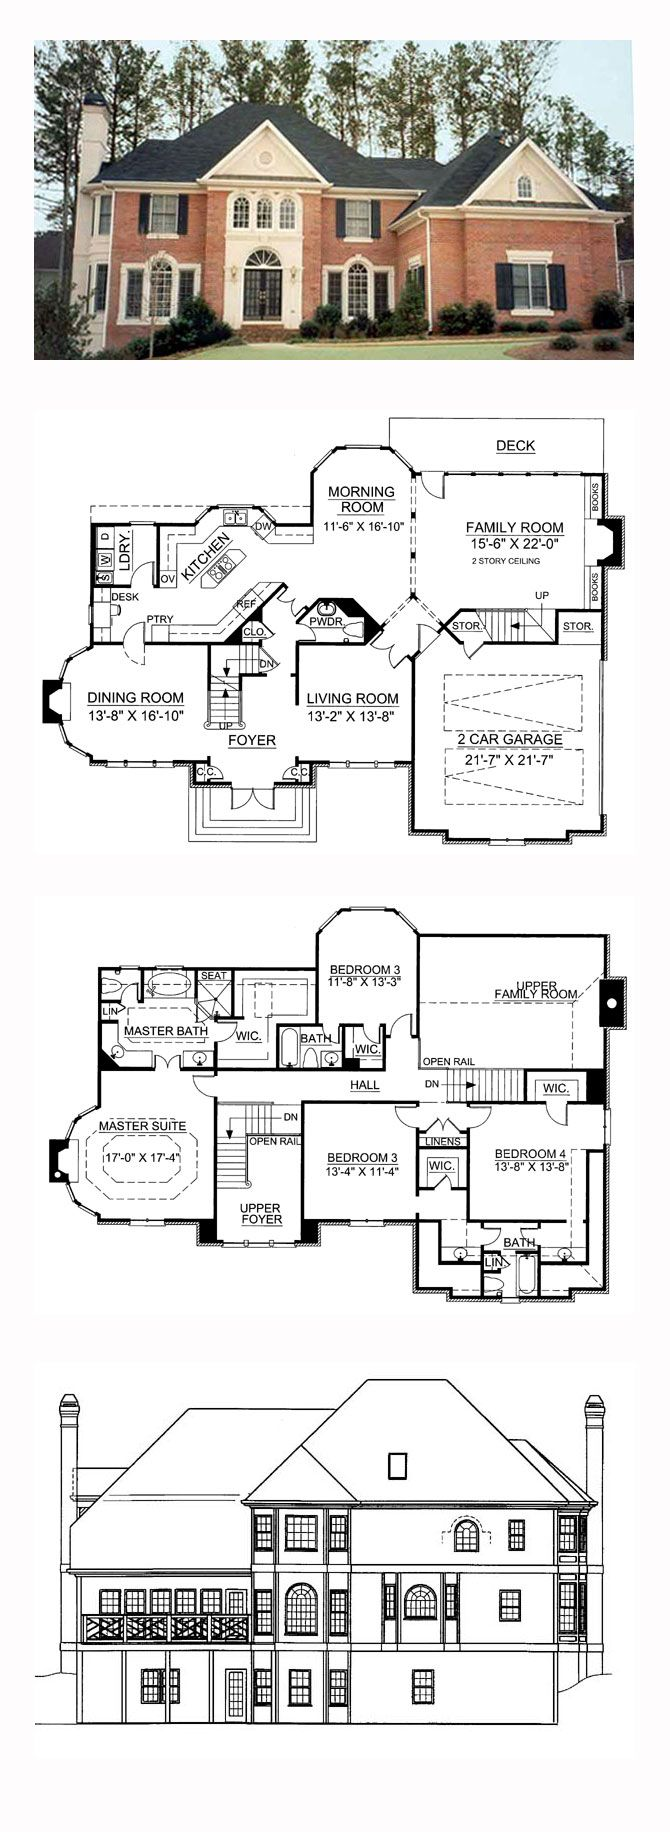 49 Best Greek Revival House Plans Images On Pinterest